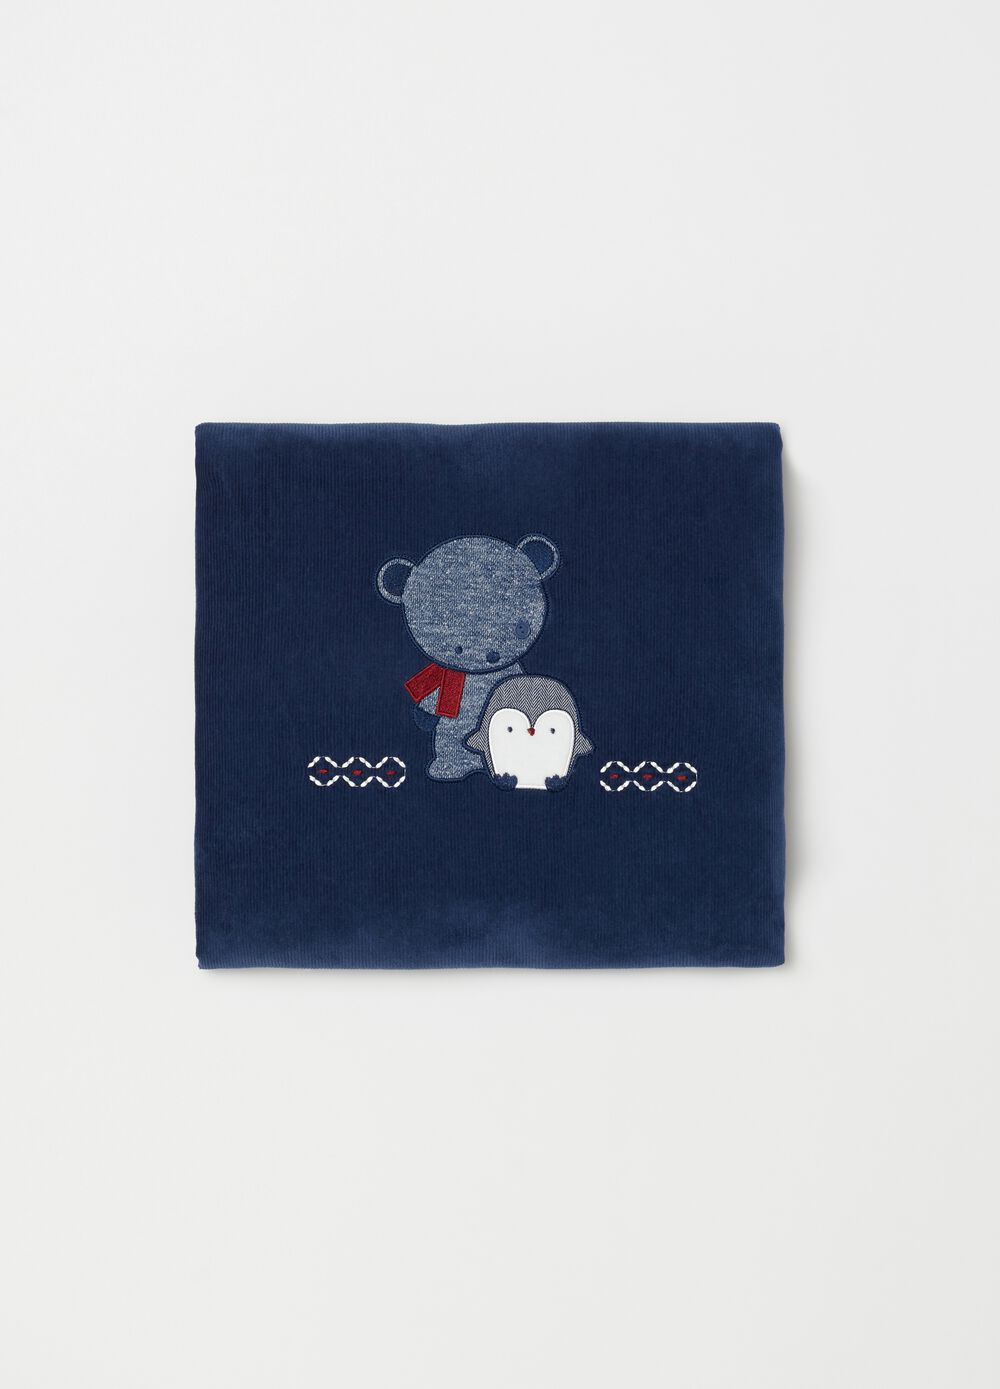 Padded blanket with embroidery